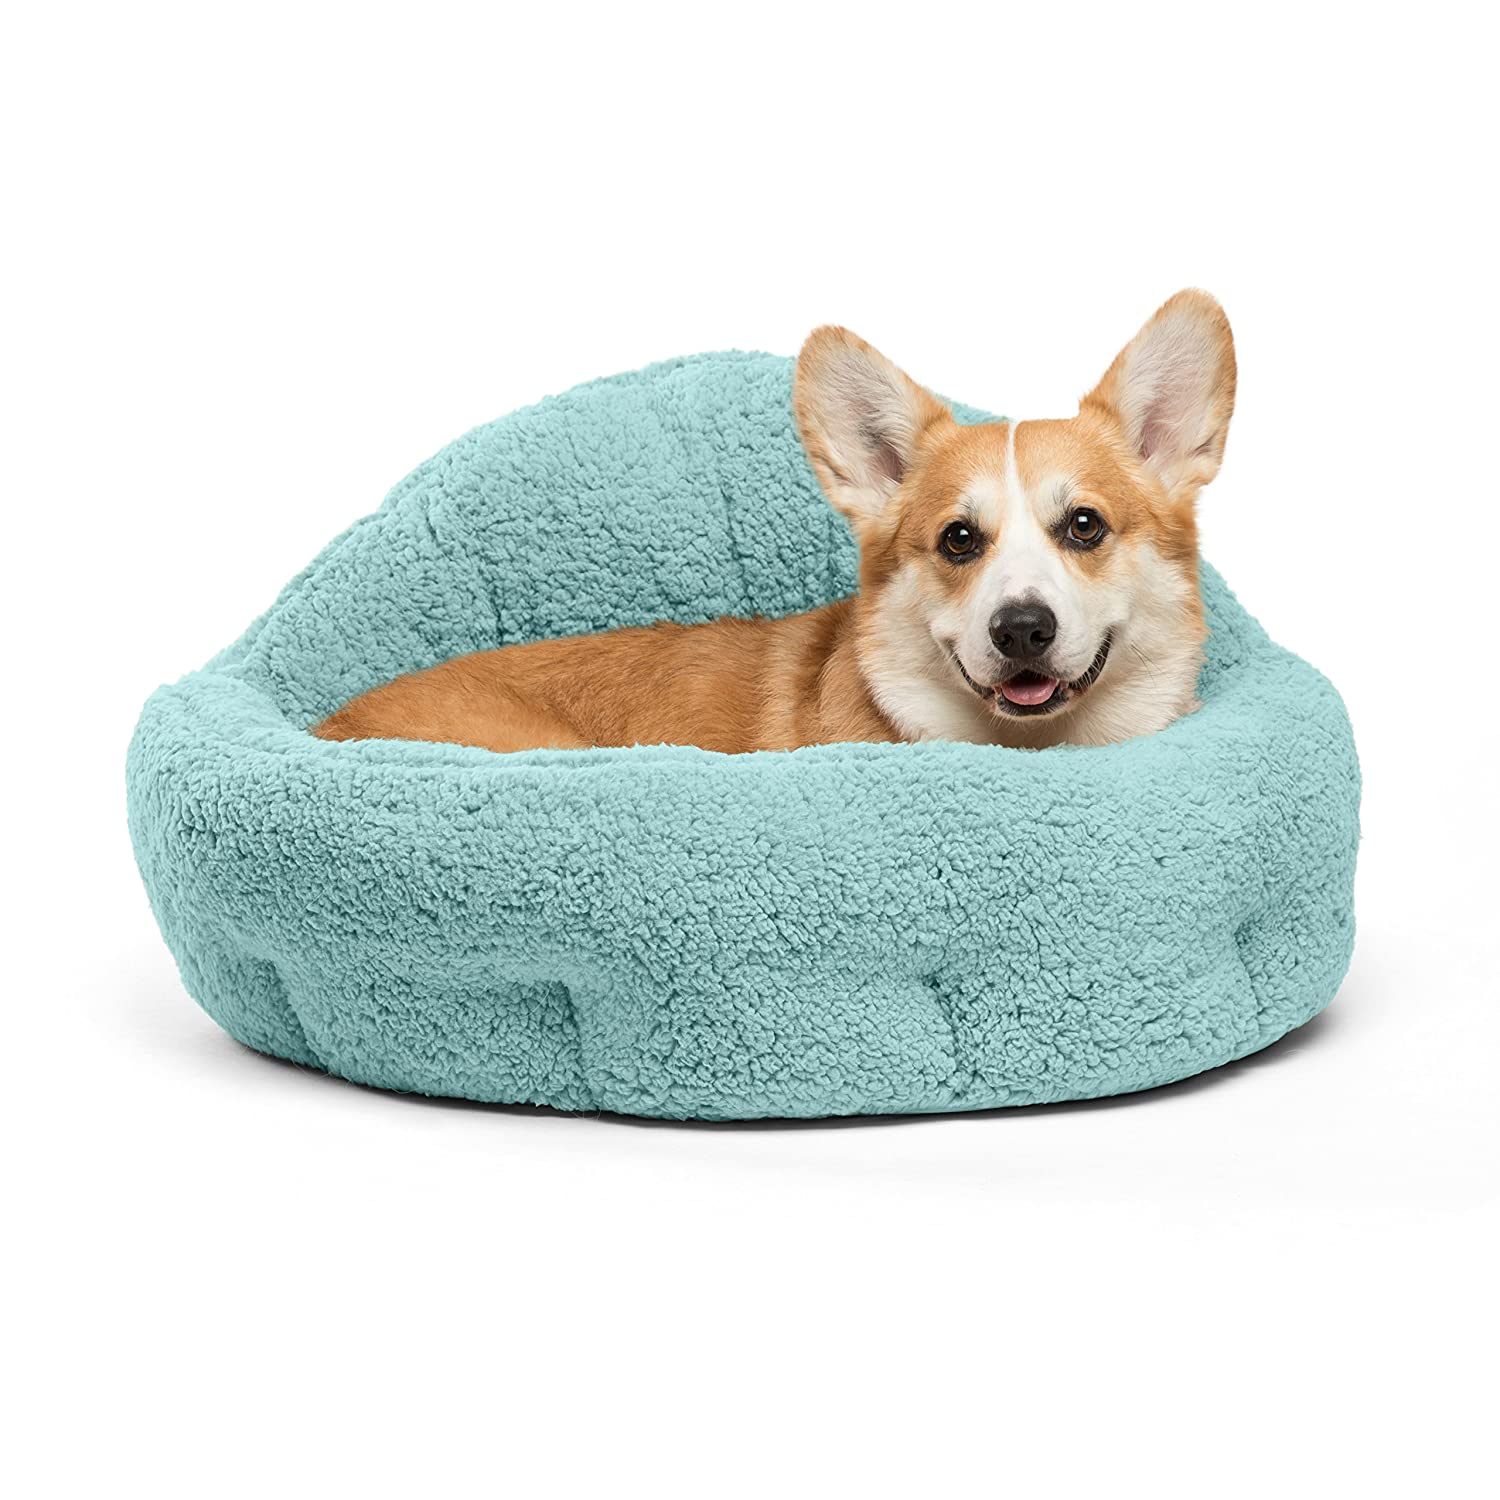 Best Friends by Sheri OrthoComfort Jumbo Large Deep Dish Cuddler Self-Warming Cat and Dog Bed Cushion for Joint-Relief and Improved Sleep, Teal